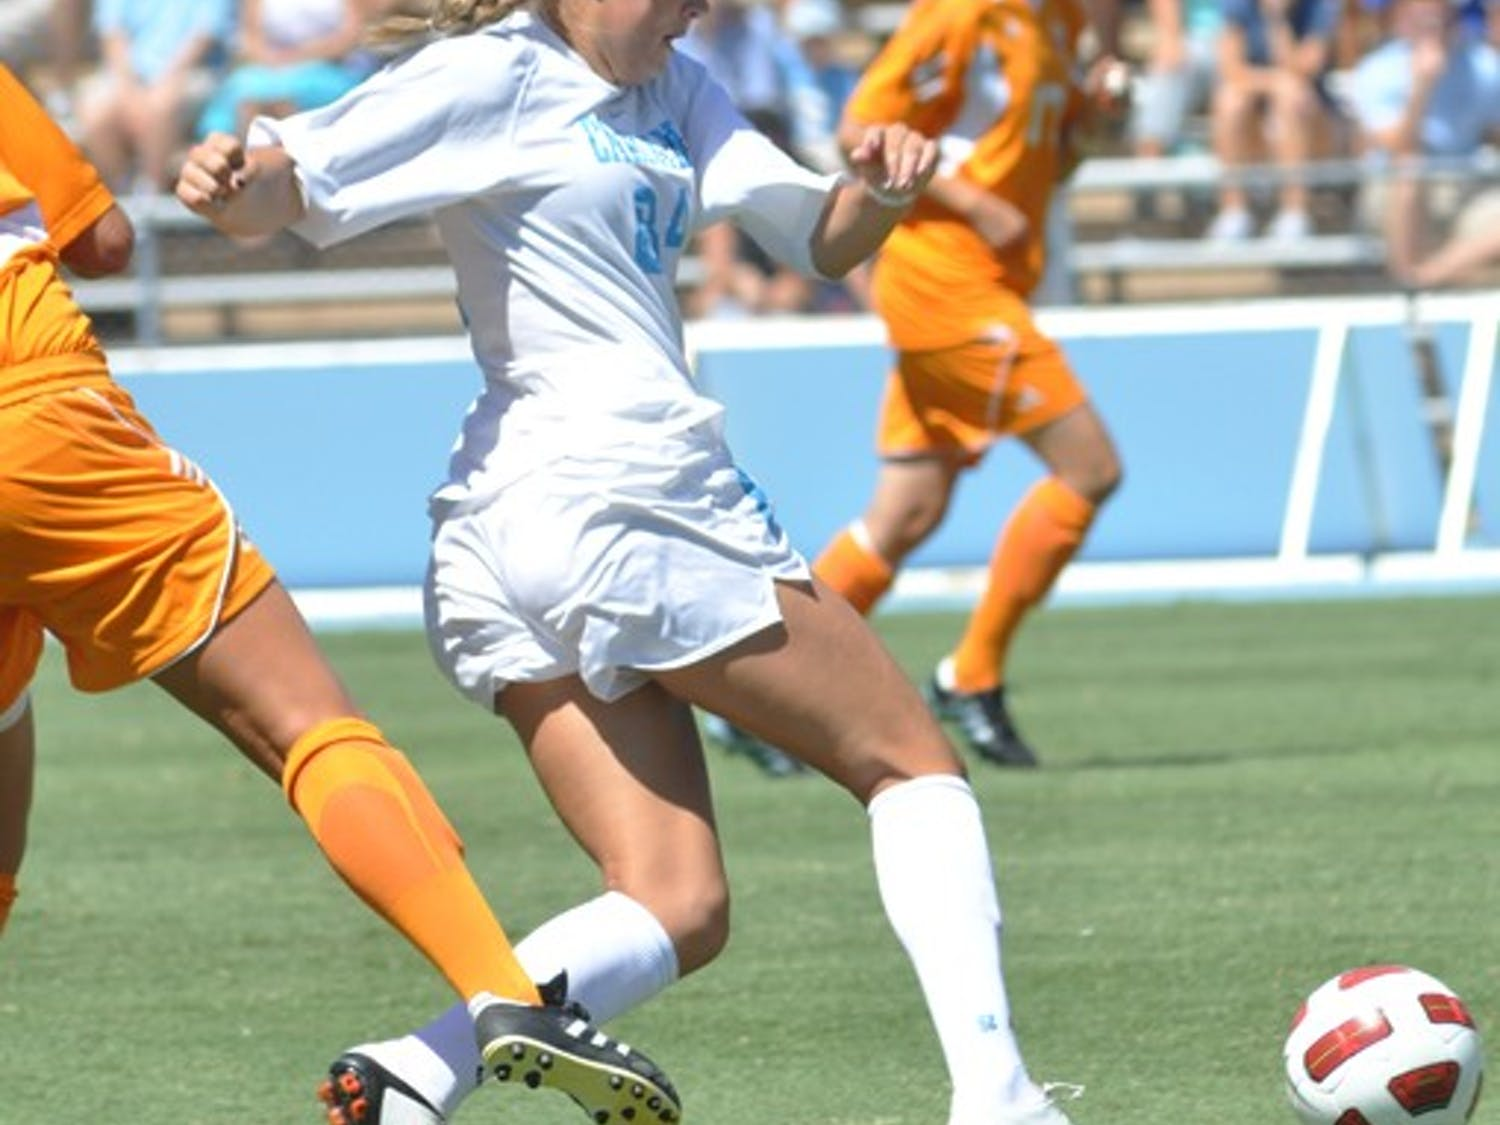 UNC junior forward Courtney Jones powers through a tackle. Jones was one of seven UNC players to score.